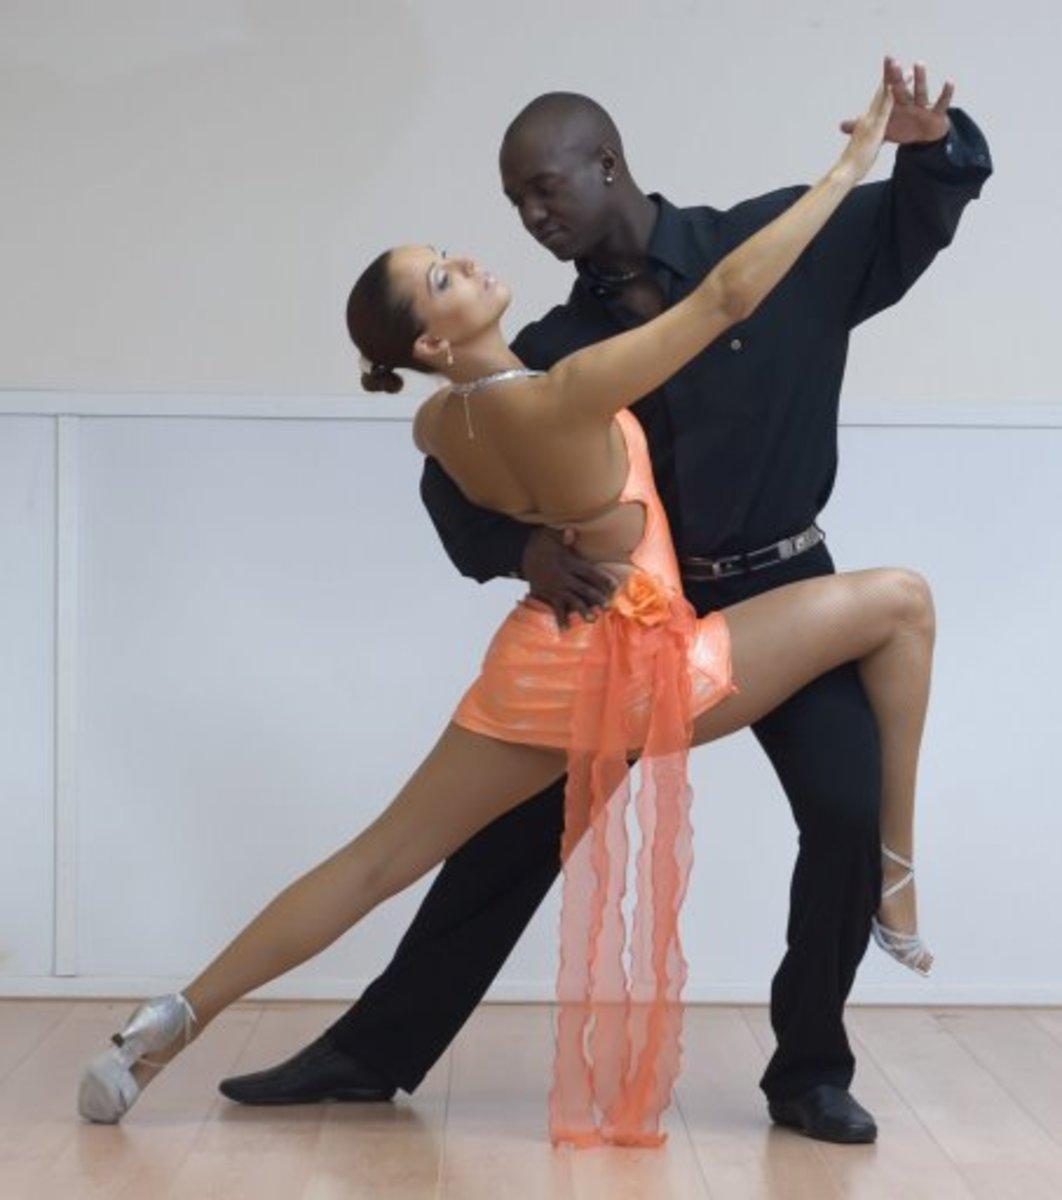 Becoming a professional salsa dancer takes many years of hard work, dedication, training, and practice. If you put in the time and effort, you can become an incredible salsa dancer one day!